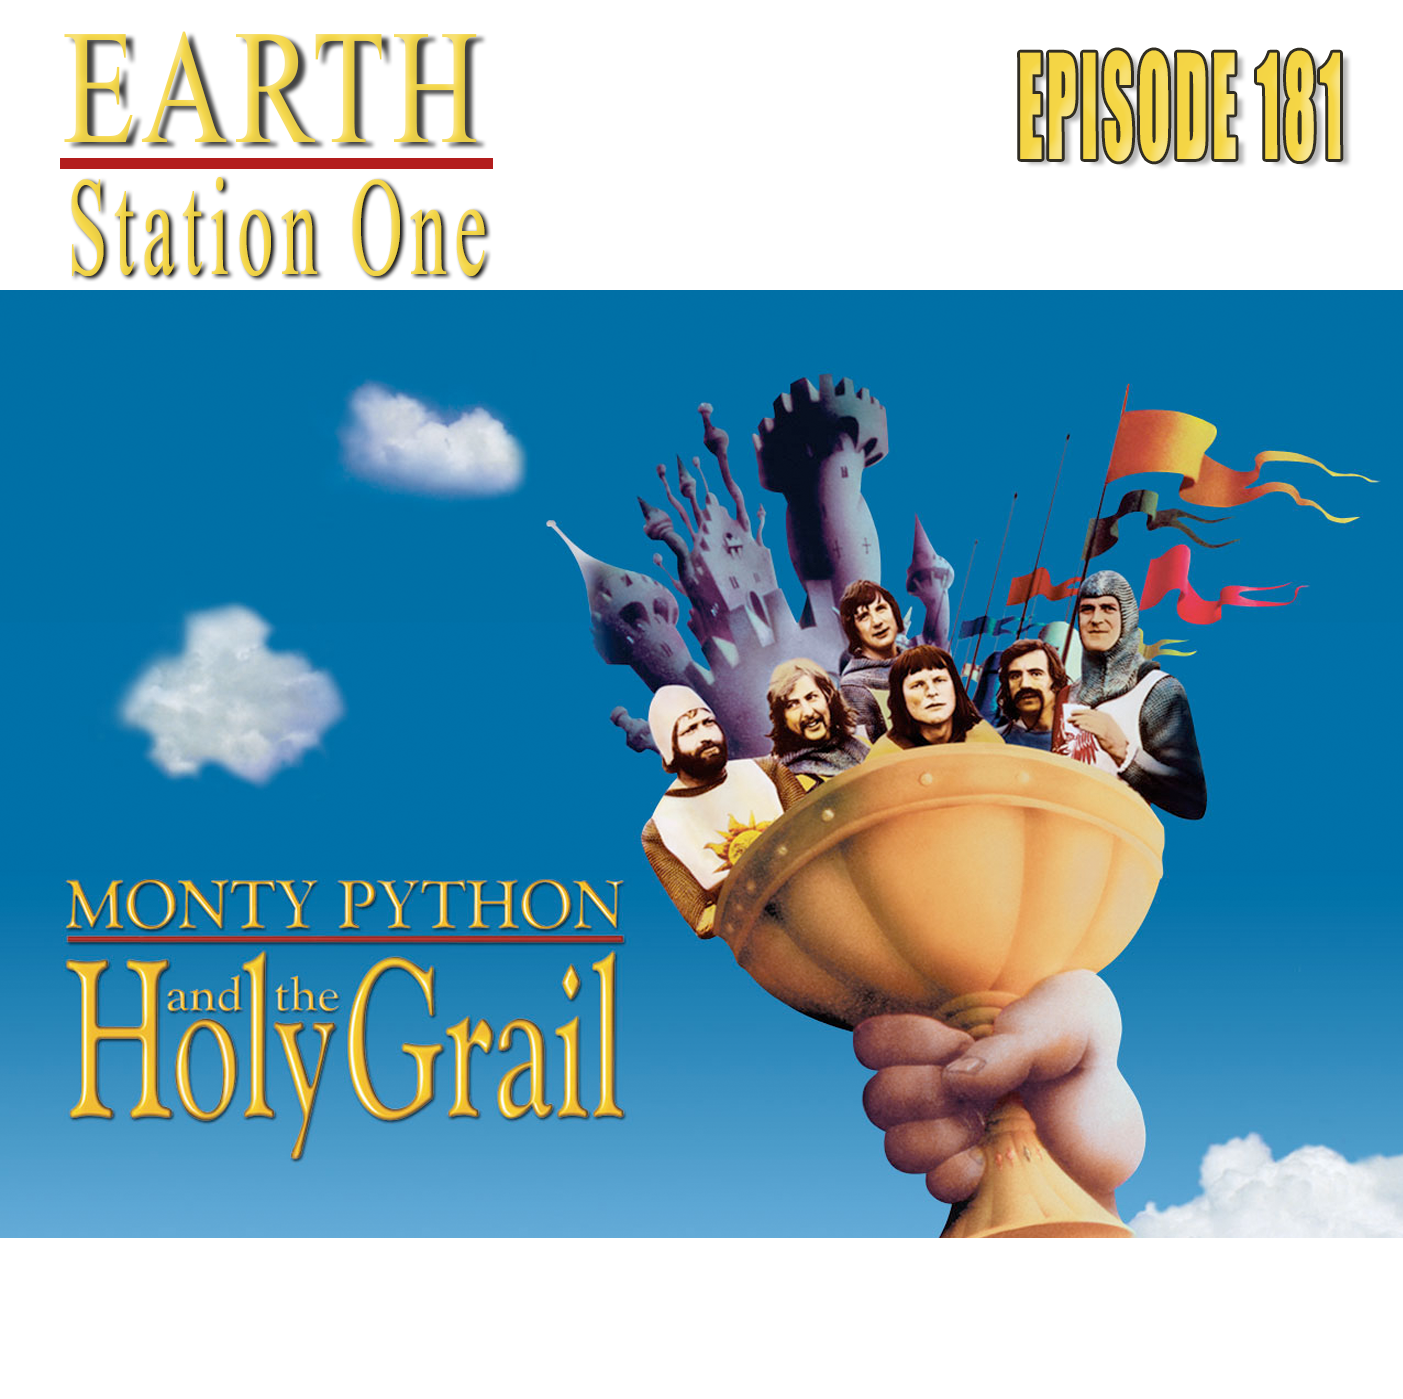 Earth Station One Episode 181